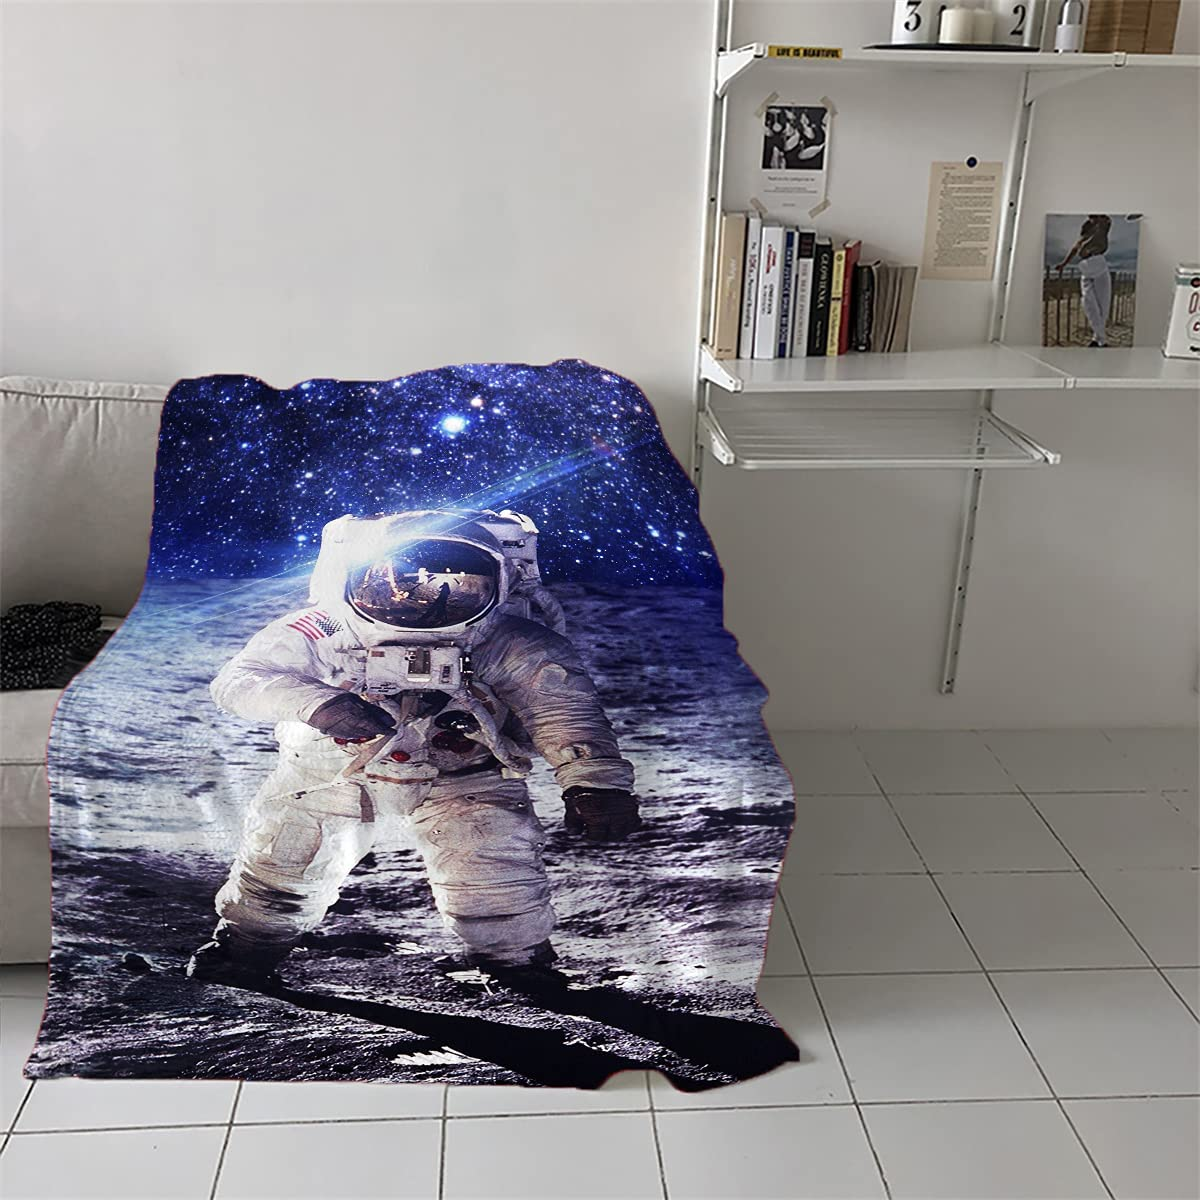 Beach Max Factory outlet 82% OFF Blanket Sandproof Waterproof NASA Astronauts On American T